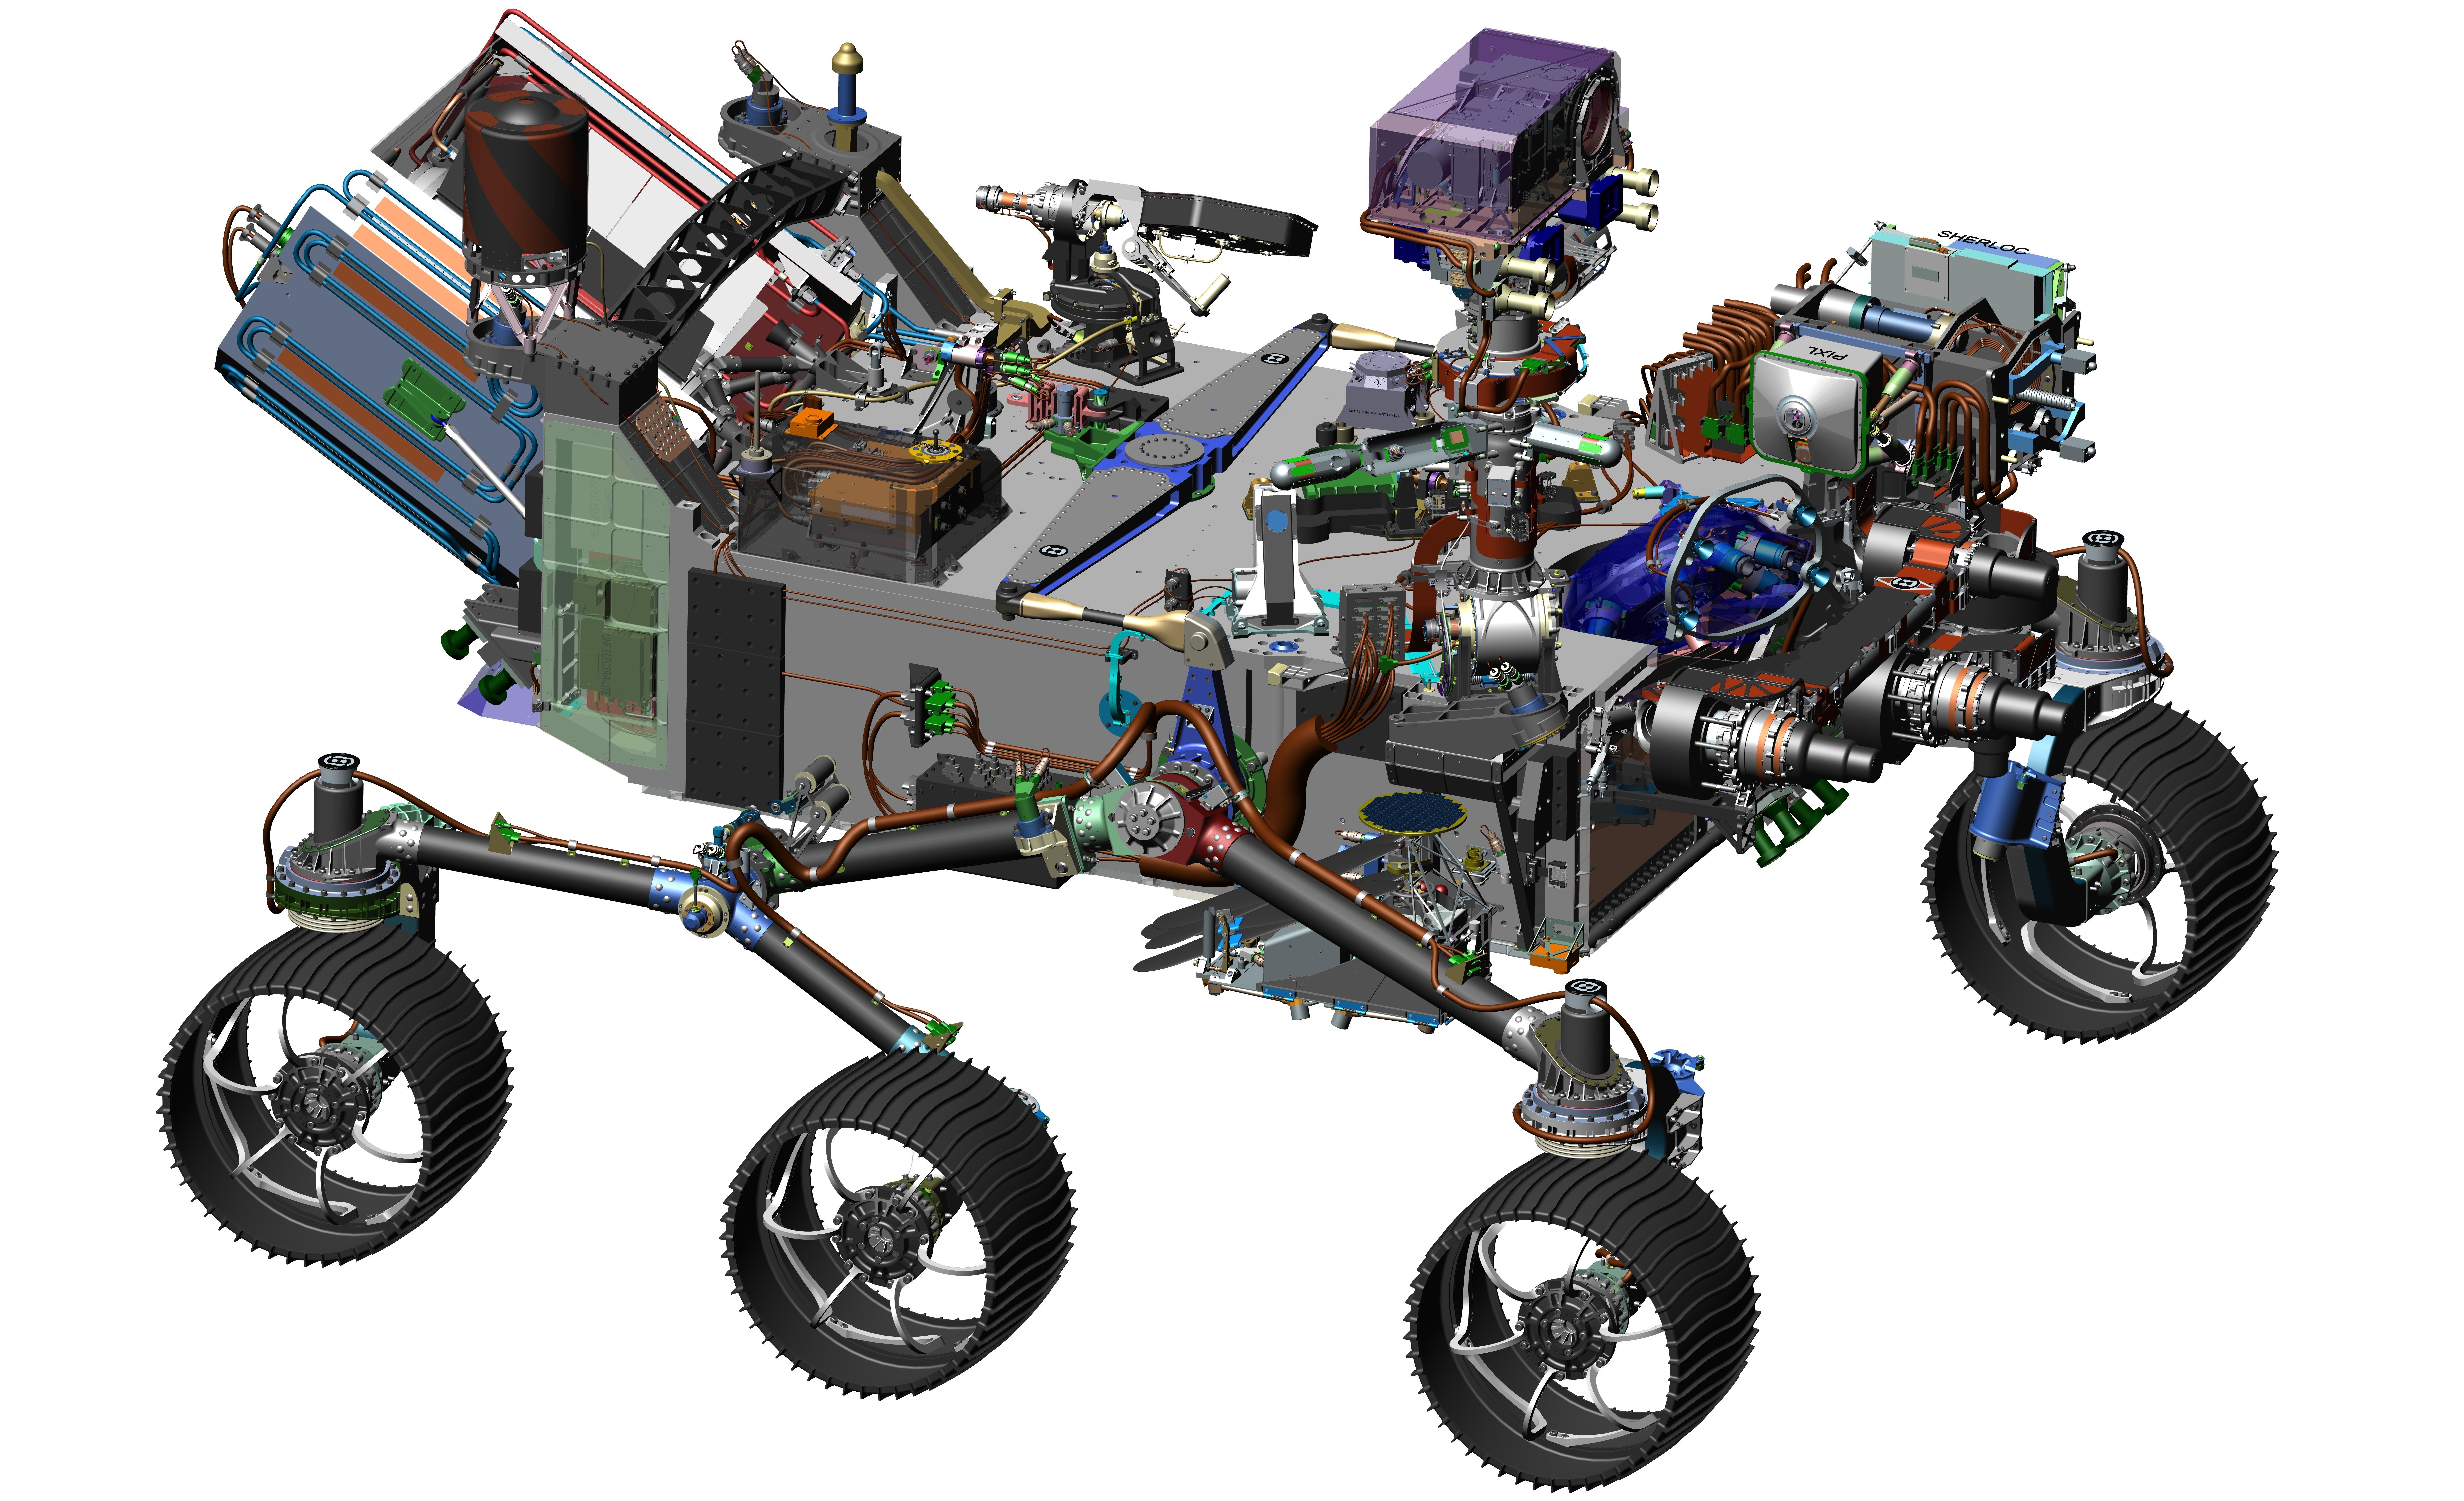 9847x6000 Space Images Computer Design Drawing For Nasa's 2020 Mars Rover